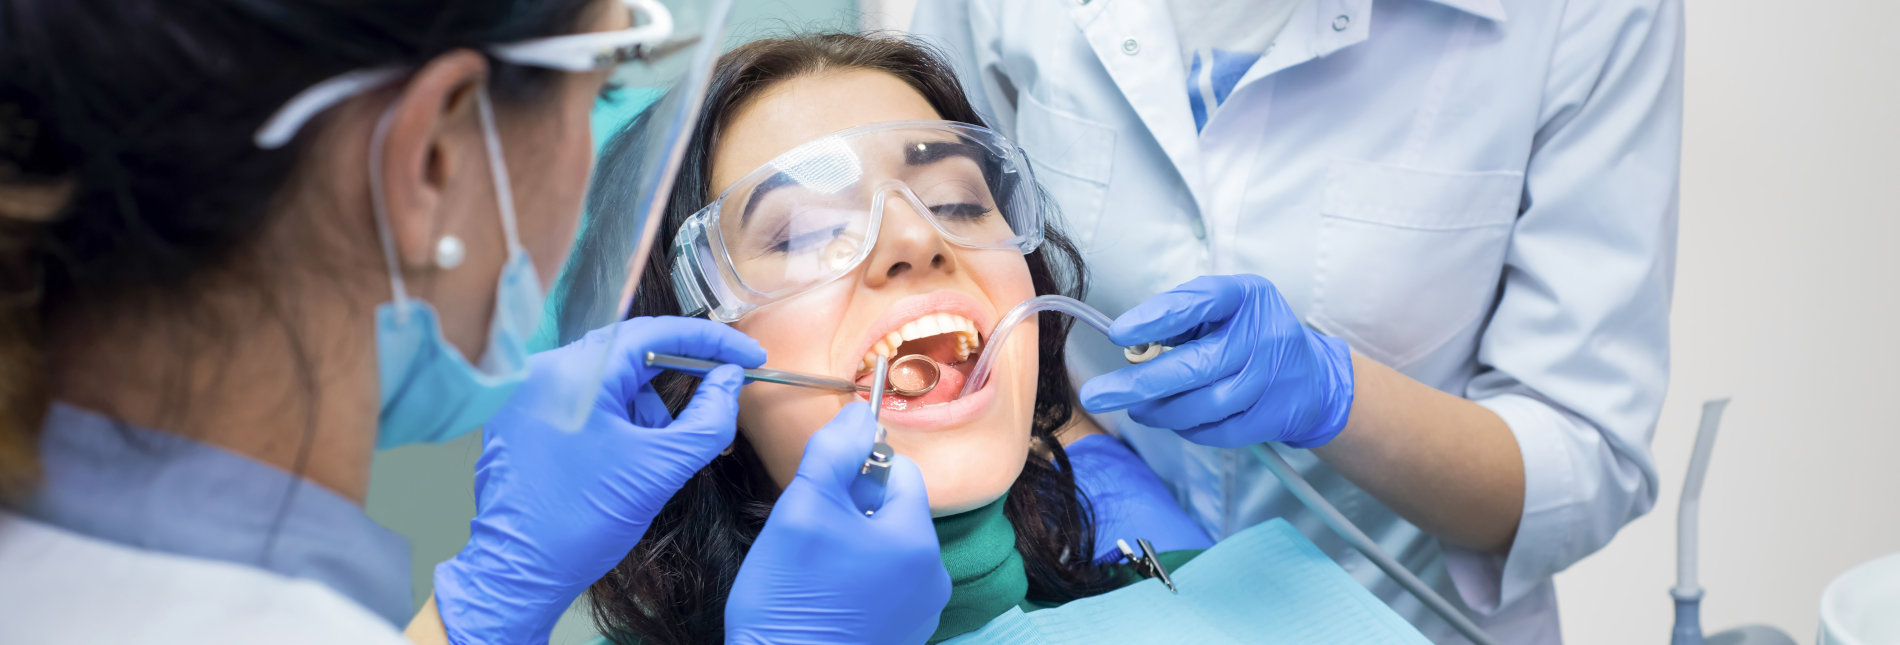 Two dental doctors and patient. Procedure at the dentist office.